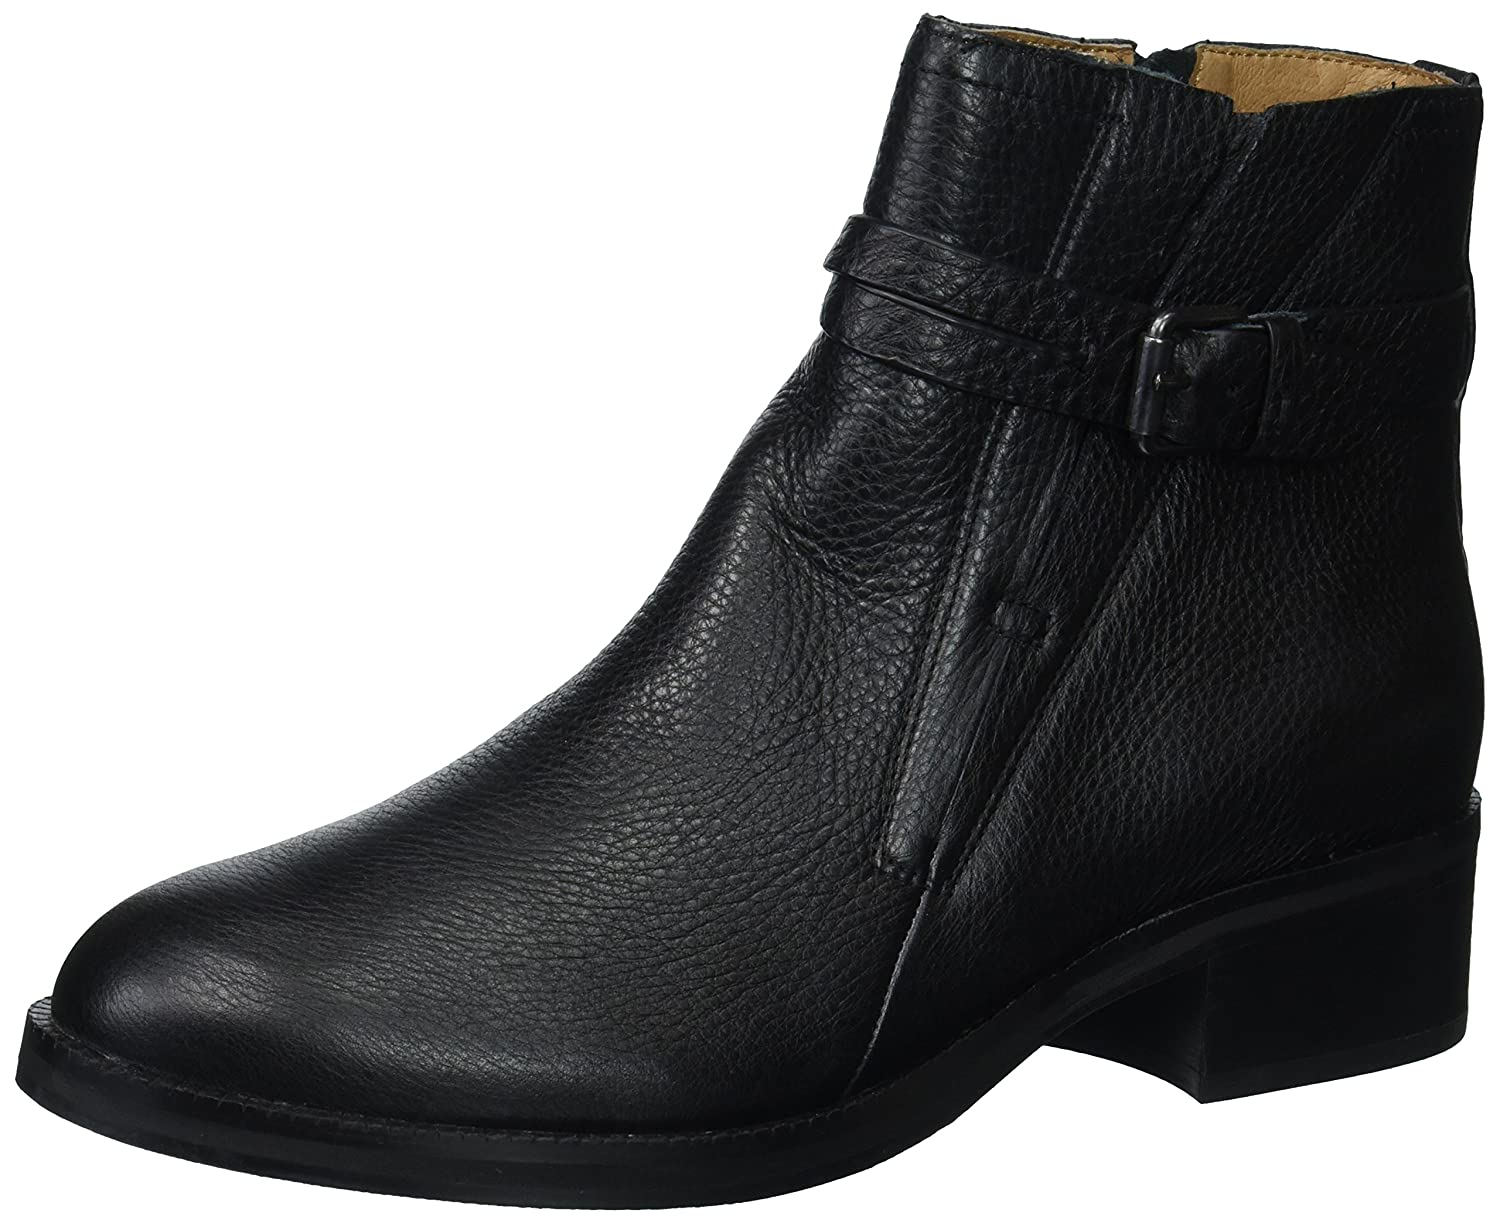 Gentle Souls Women's Percy Bootie with Buckle Detail Ankle Boot B06XX8XC6K 6.5 B(M) US|Black